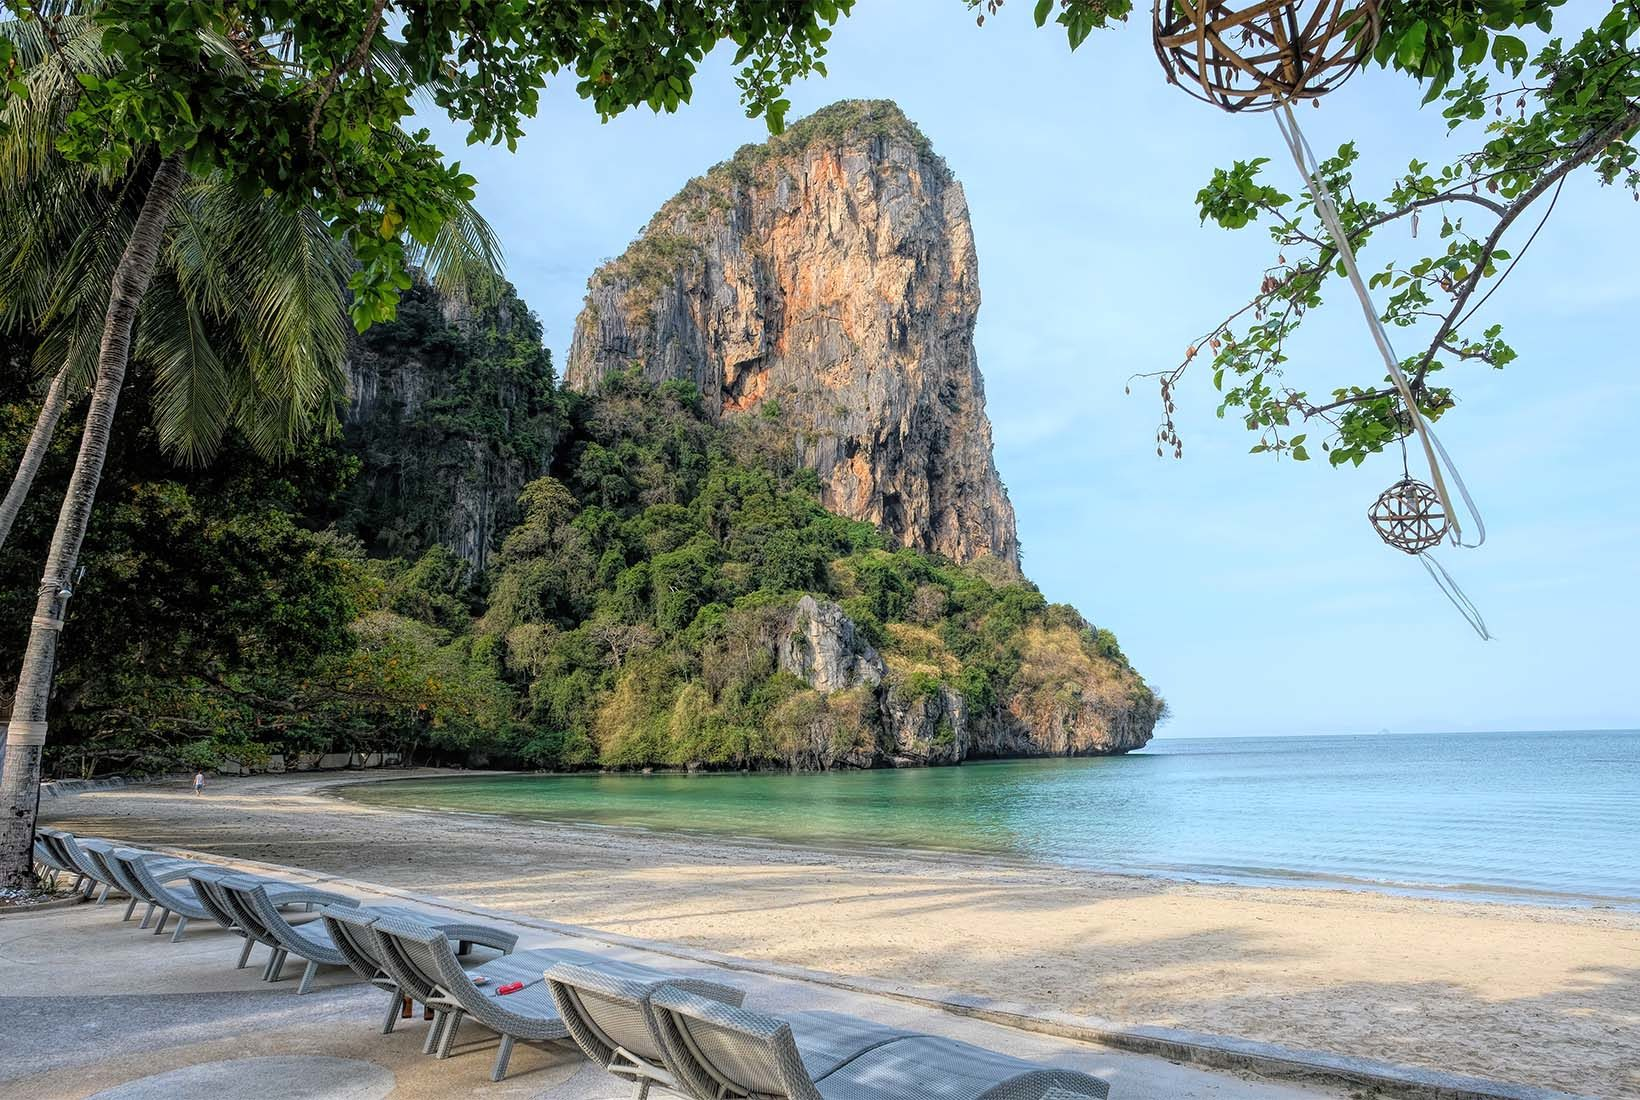 Karst limestone formations bracket both ends of lovely Railay Beach West